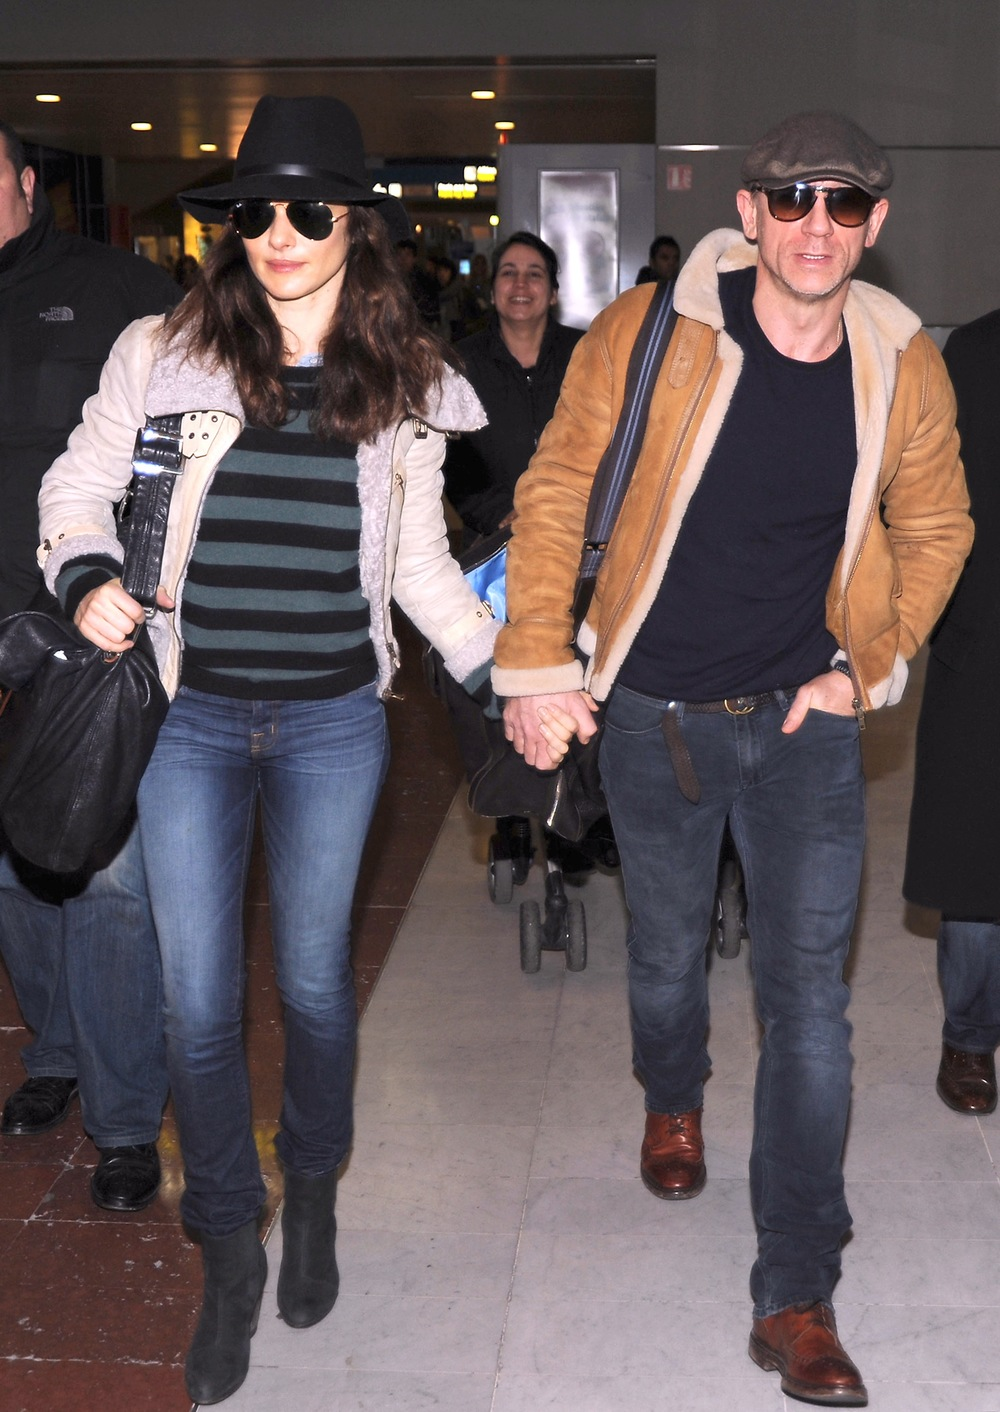 Daniel-Craig-and-wife-Rachel-Weisz-are-all-smiles-as-they-walk-hand-in-hand-through-Charles-de-Gaulle-Airport-in-Paris-5.jpg